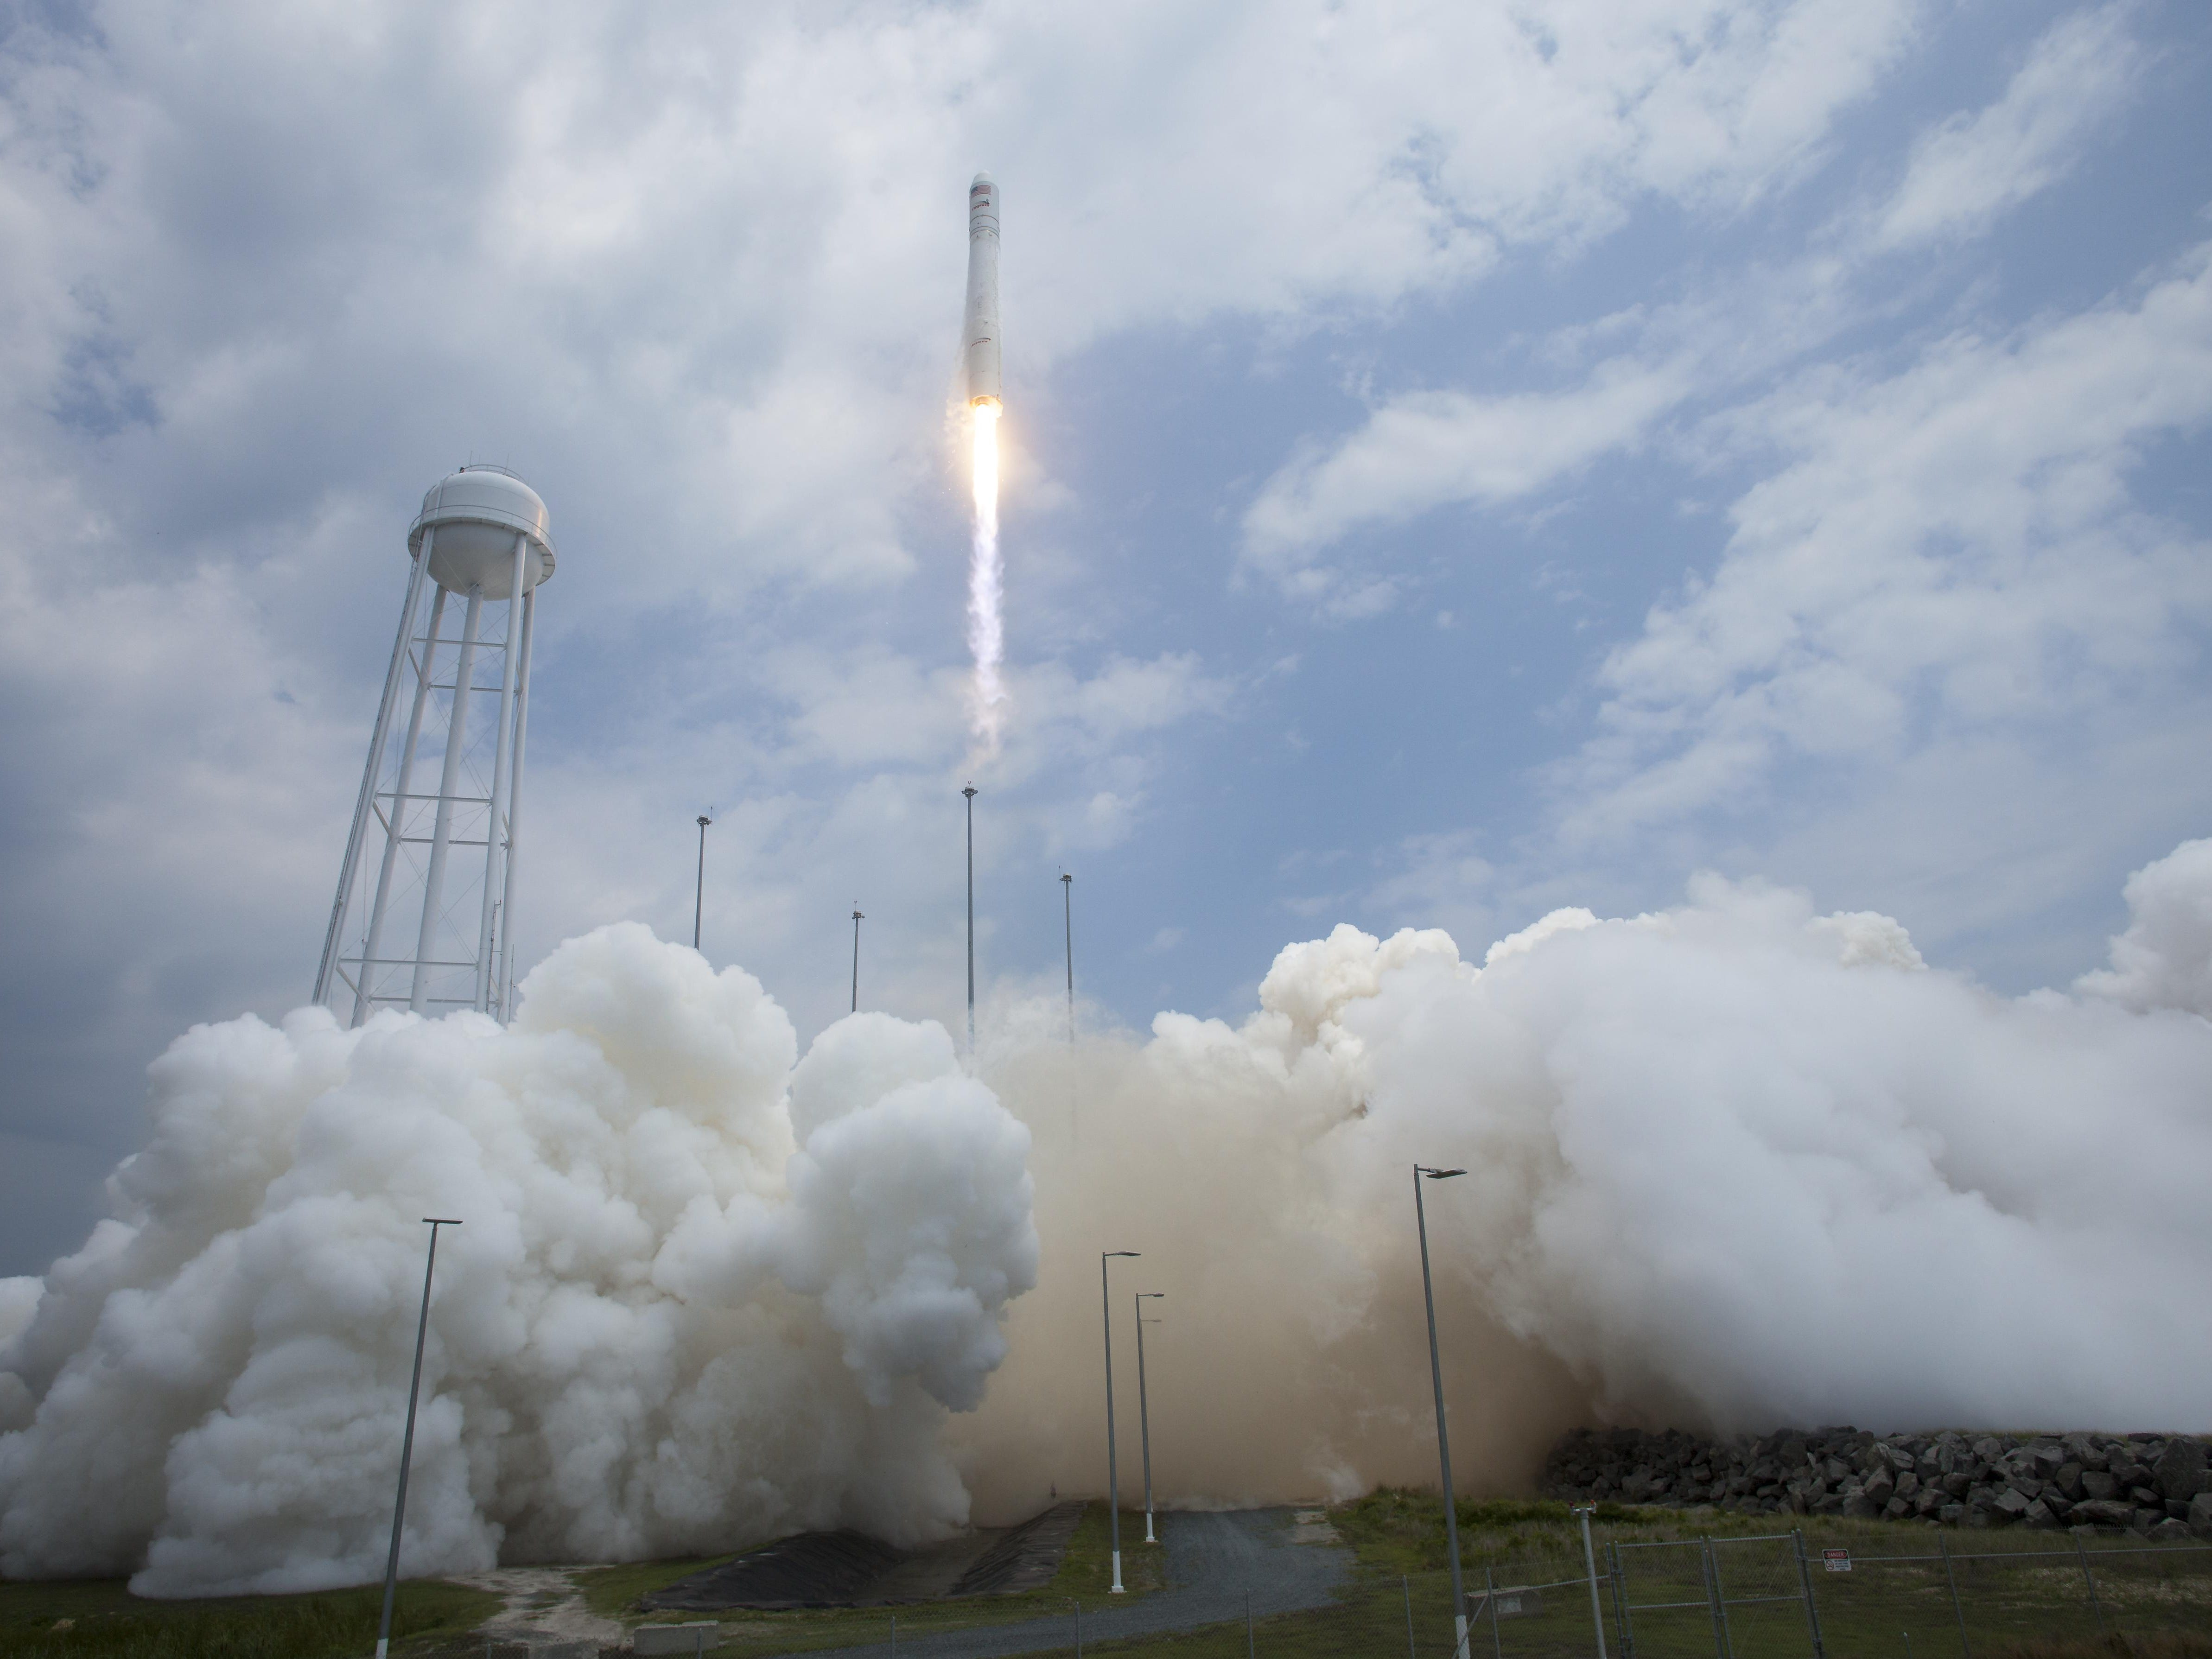 Antares rocket launches with the Cygnus spacecraft onboard July 13, 2014, at NASA's Wallops Flight Facility in Virginia.